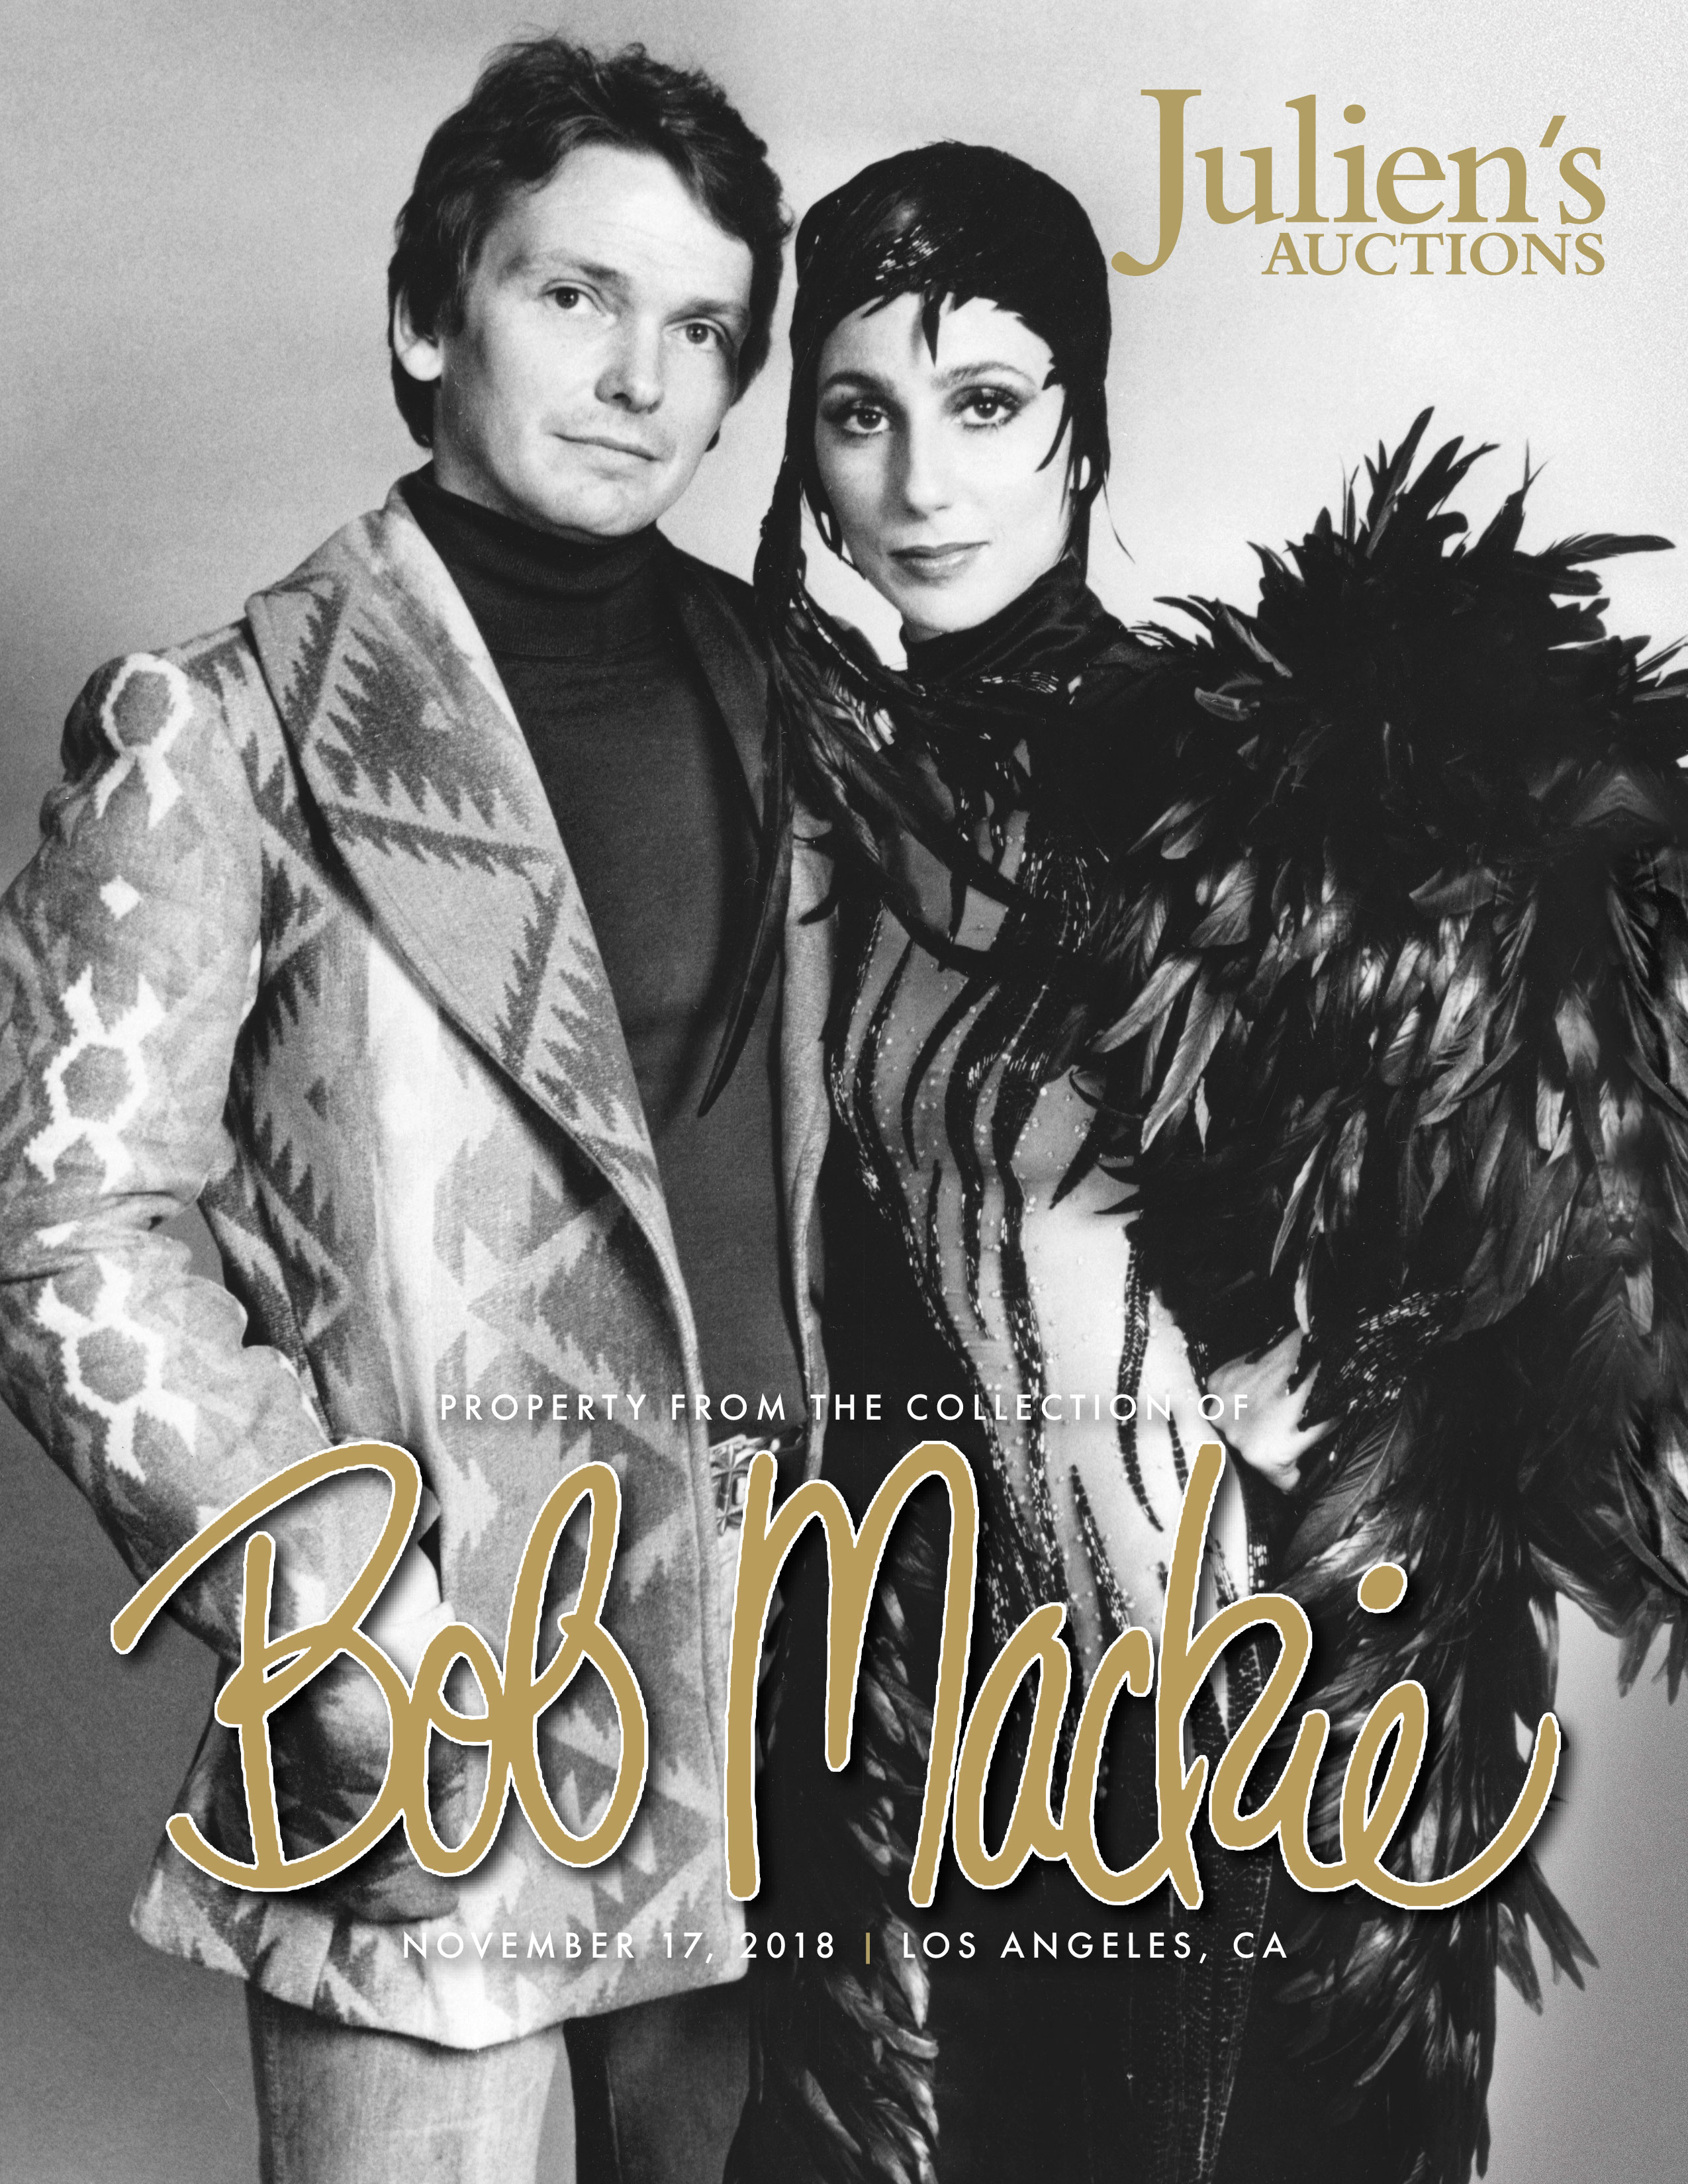 Bob Mackie Collection goes on auction November 17 2018 in Los Angeles